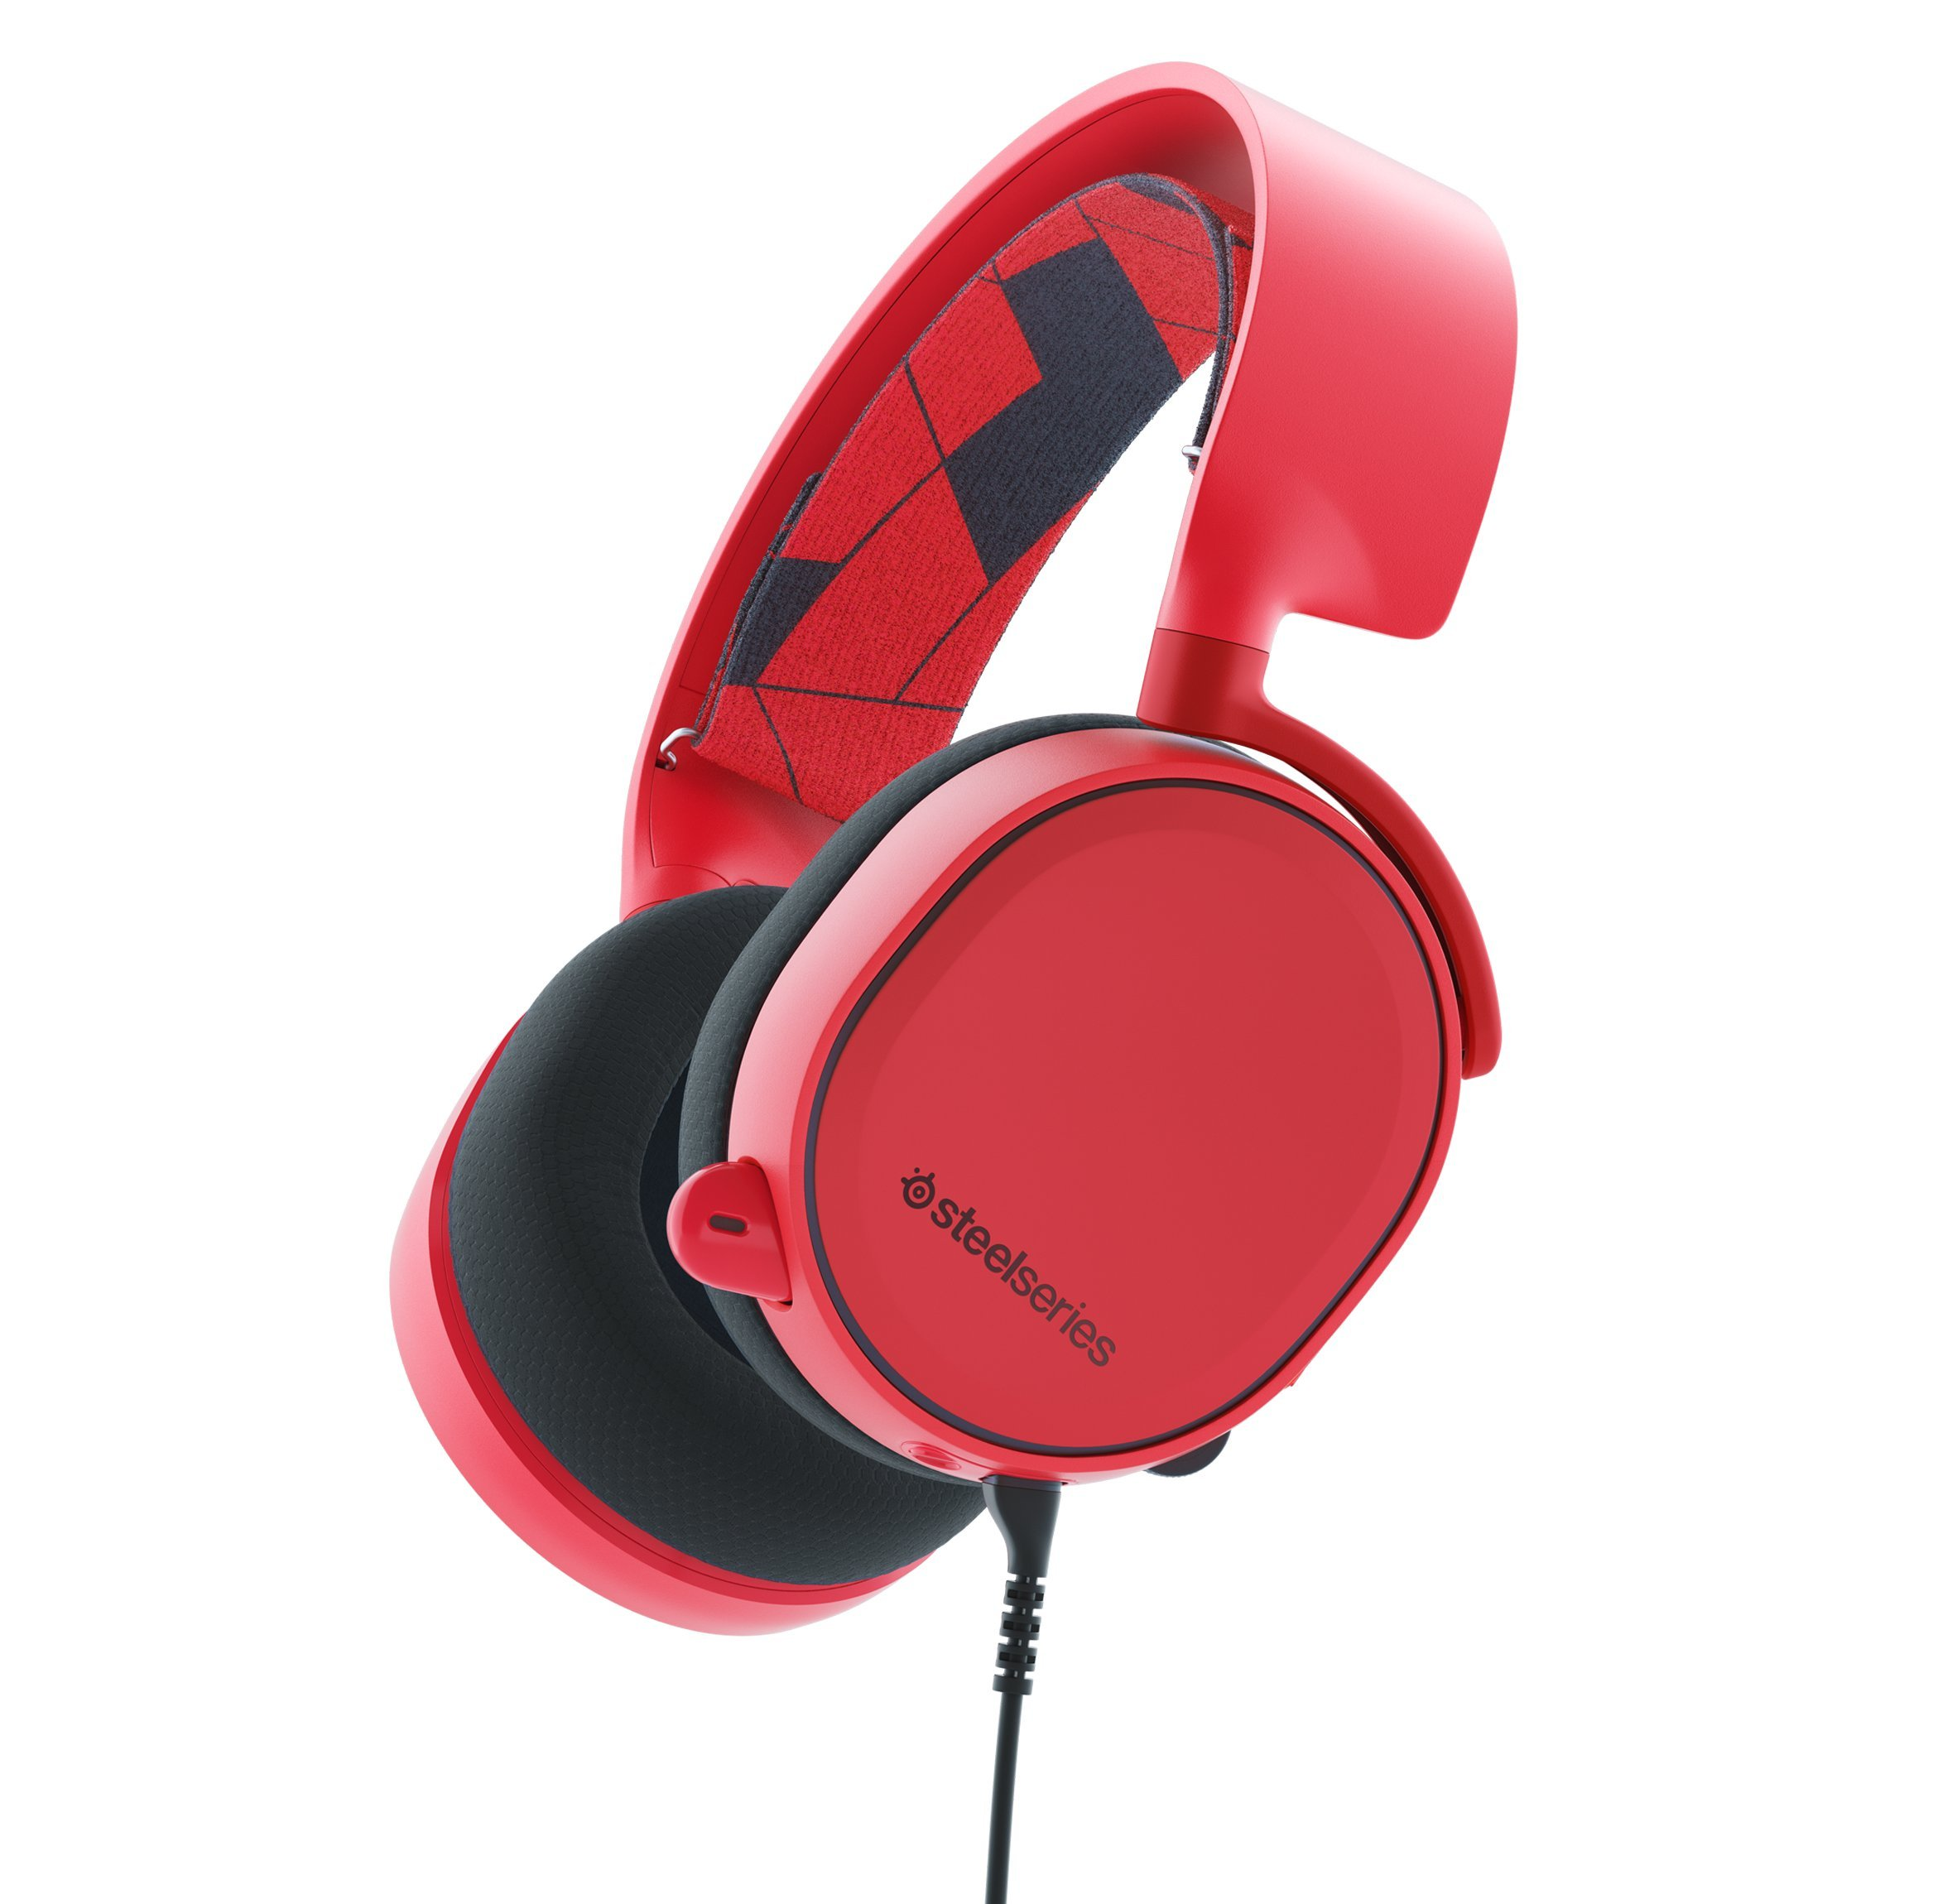 SteelSeries Arctis 3 All-Platform Gaming Headset for PC, PlayStation 4, Xbox One, Nintendo Switch, VR, Android and iOS - Solar Red by SteelSeries